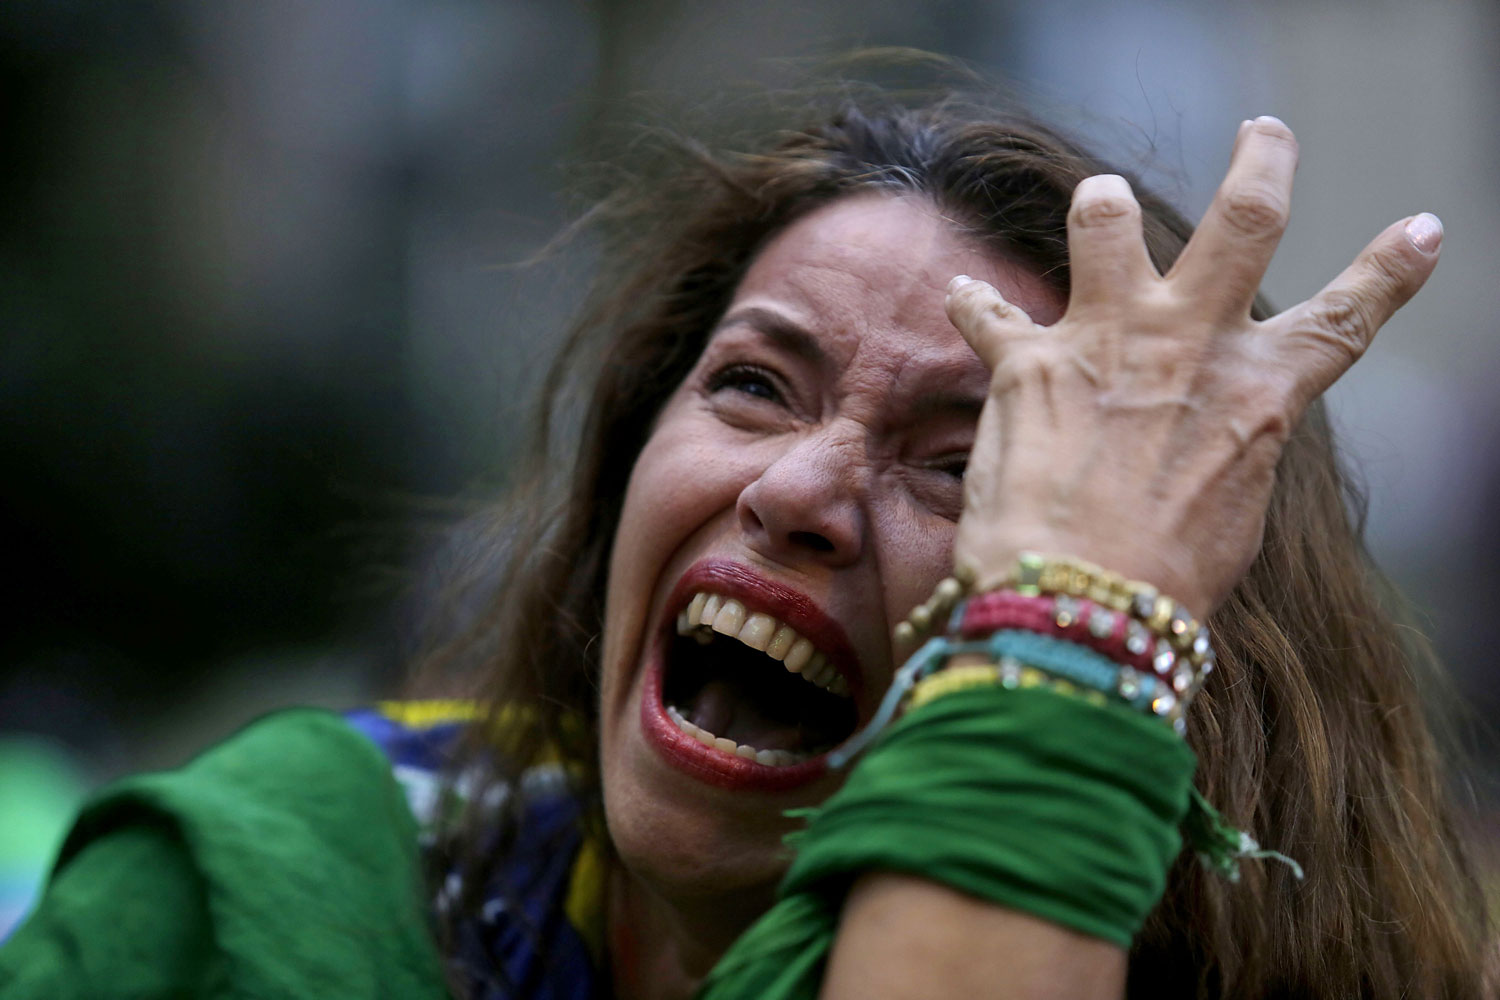 A Brazil soccer fan cries as Germany scores against her team at a semifinal World Cup match as she watches the game on a live telecast in Belo Horizonte, Brazil, July 8, 2014.